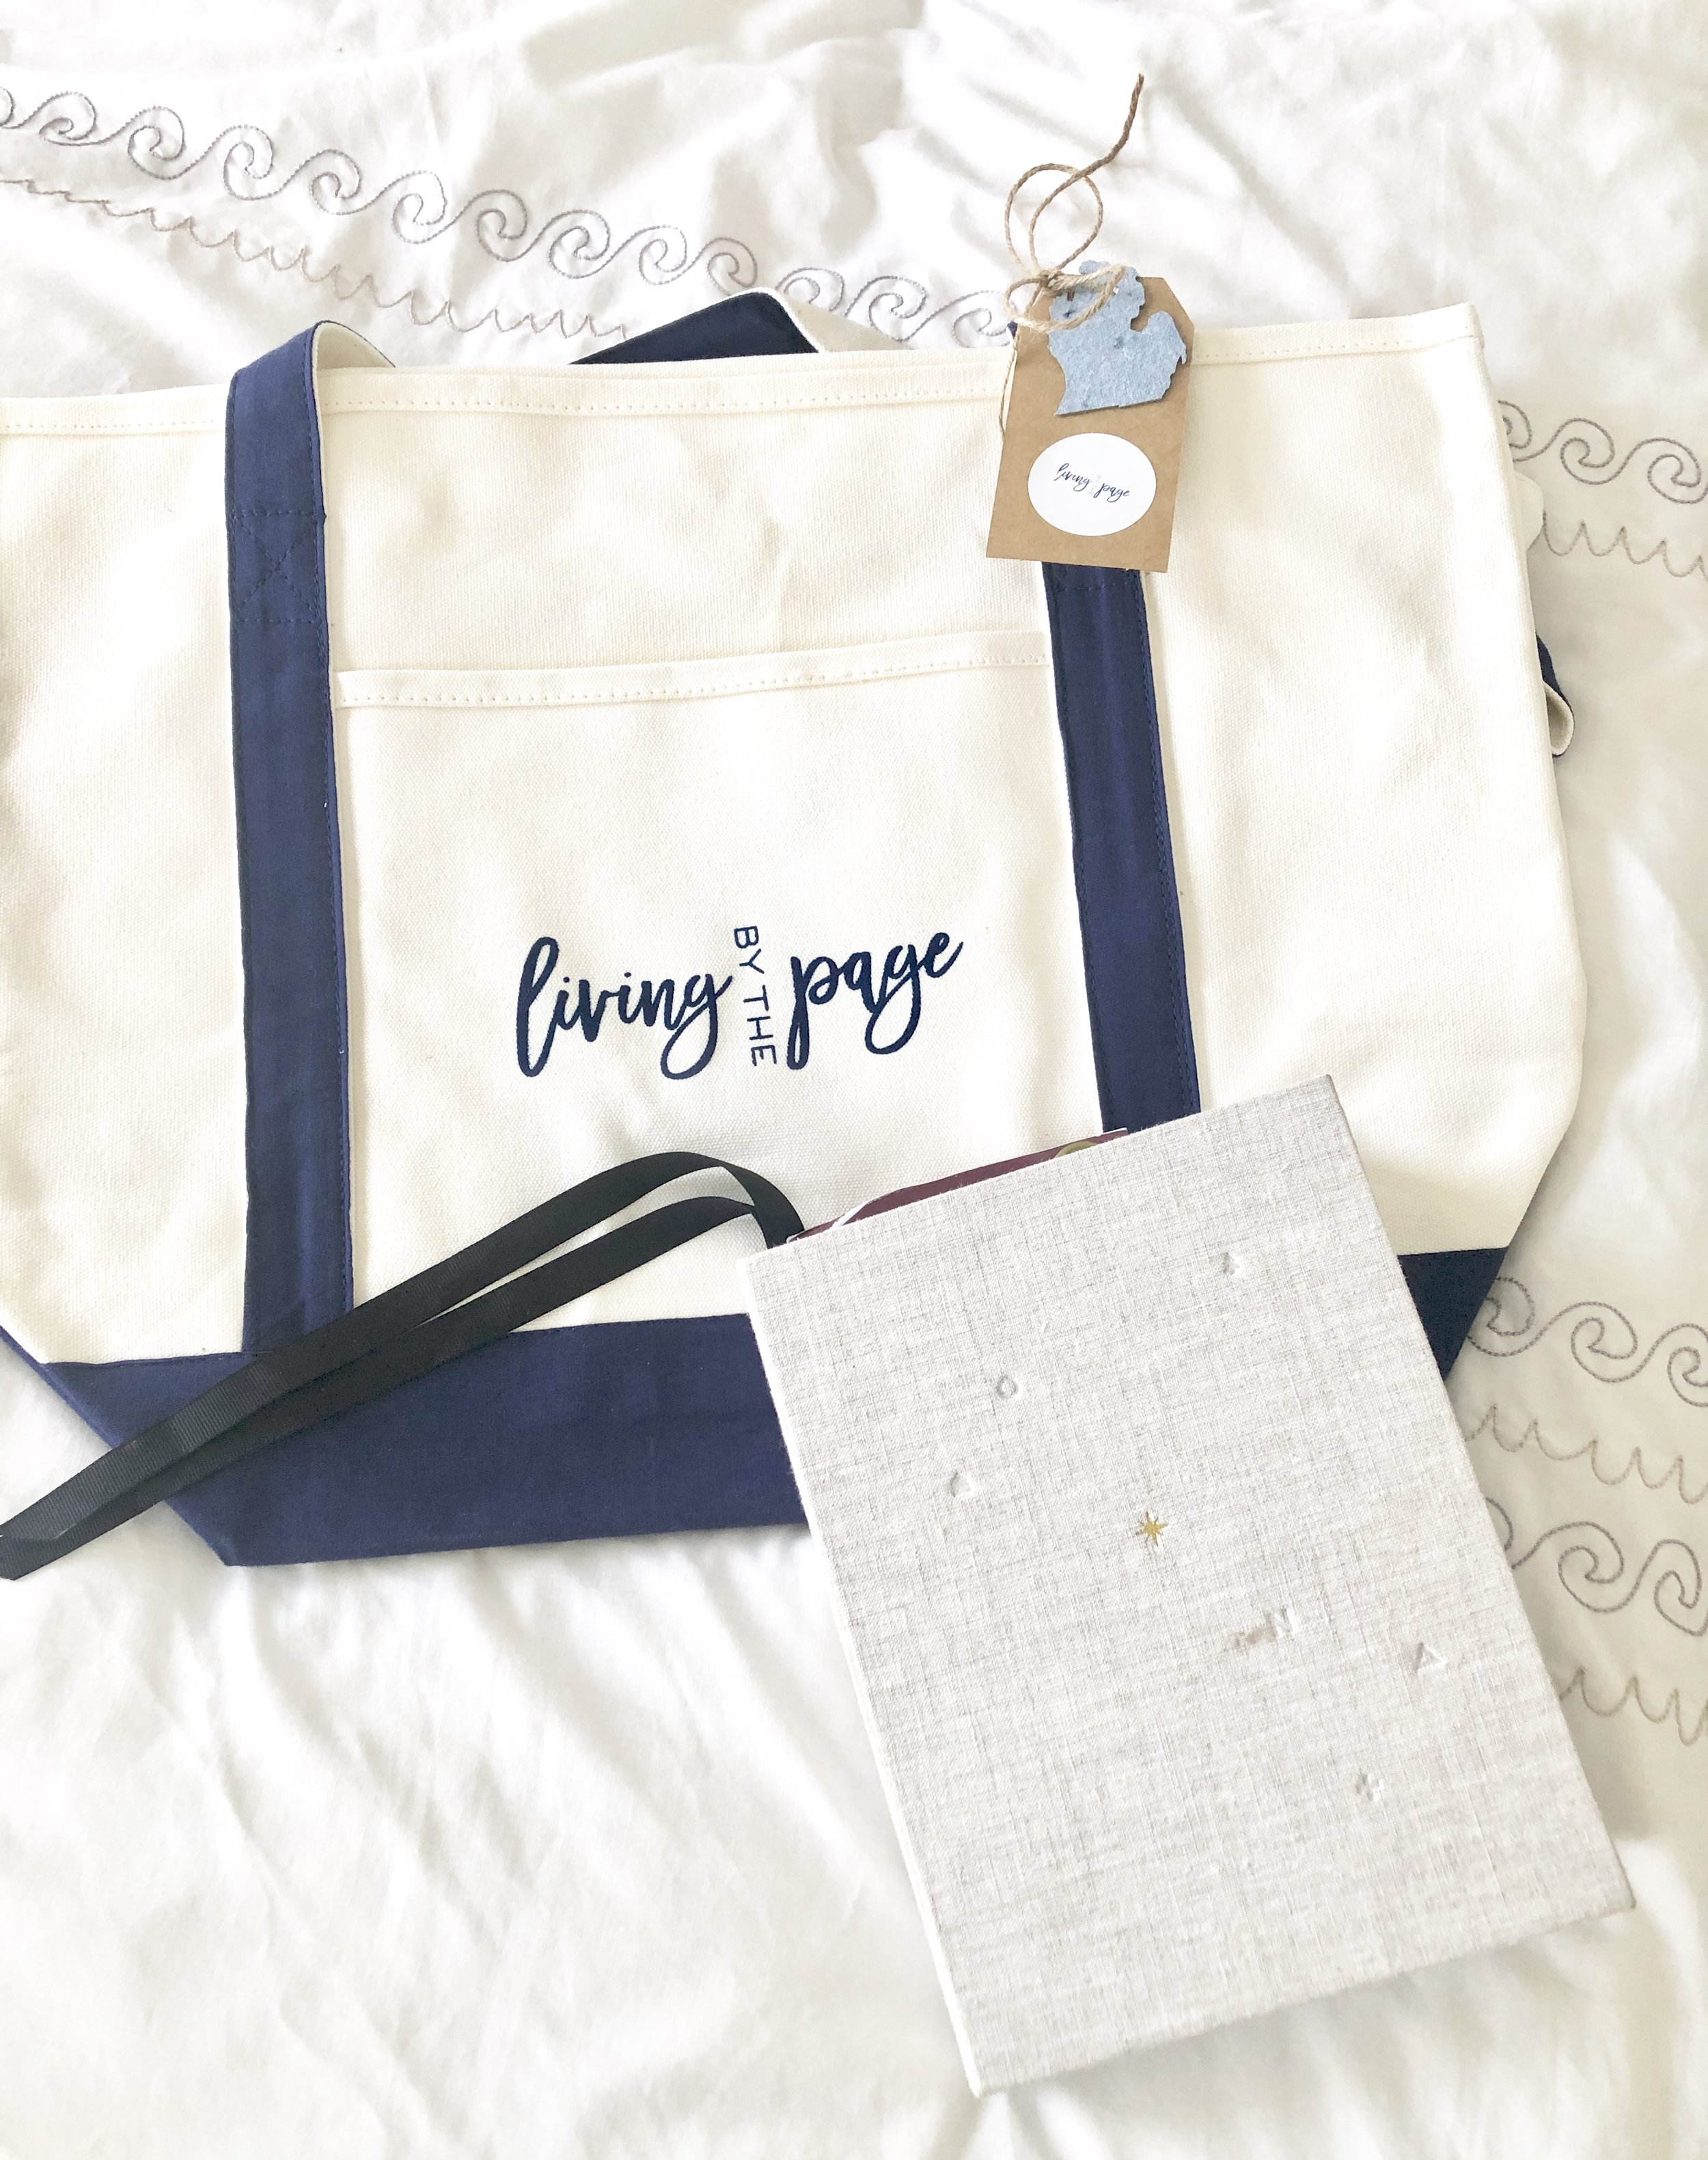 from the library haul to the farmer's market one can never have too many canvas bags!    USE CODE MOM15 FOR 15% OFF!    ORDER BY MAY 7 TO ENSURE DELIVERY FOR MOTHER'S DAY!